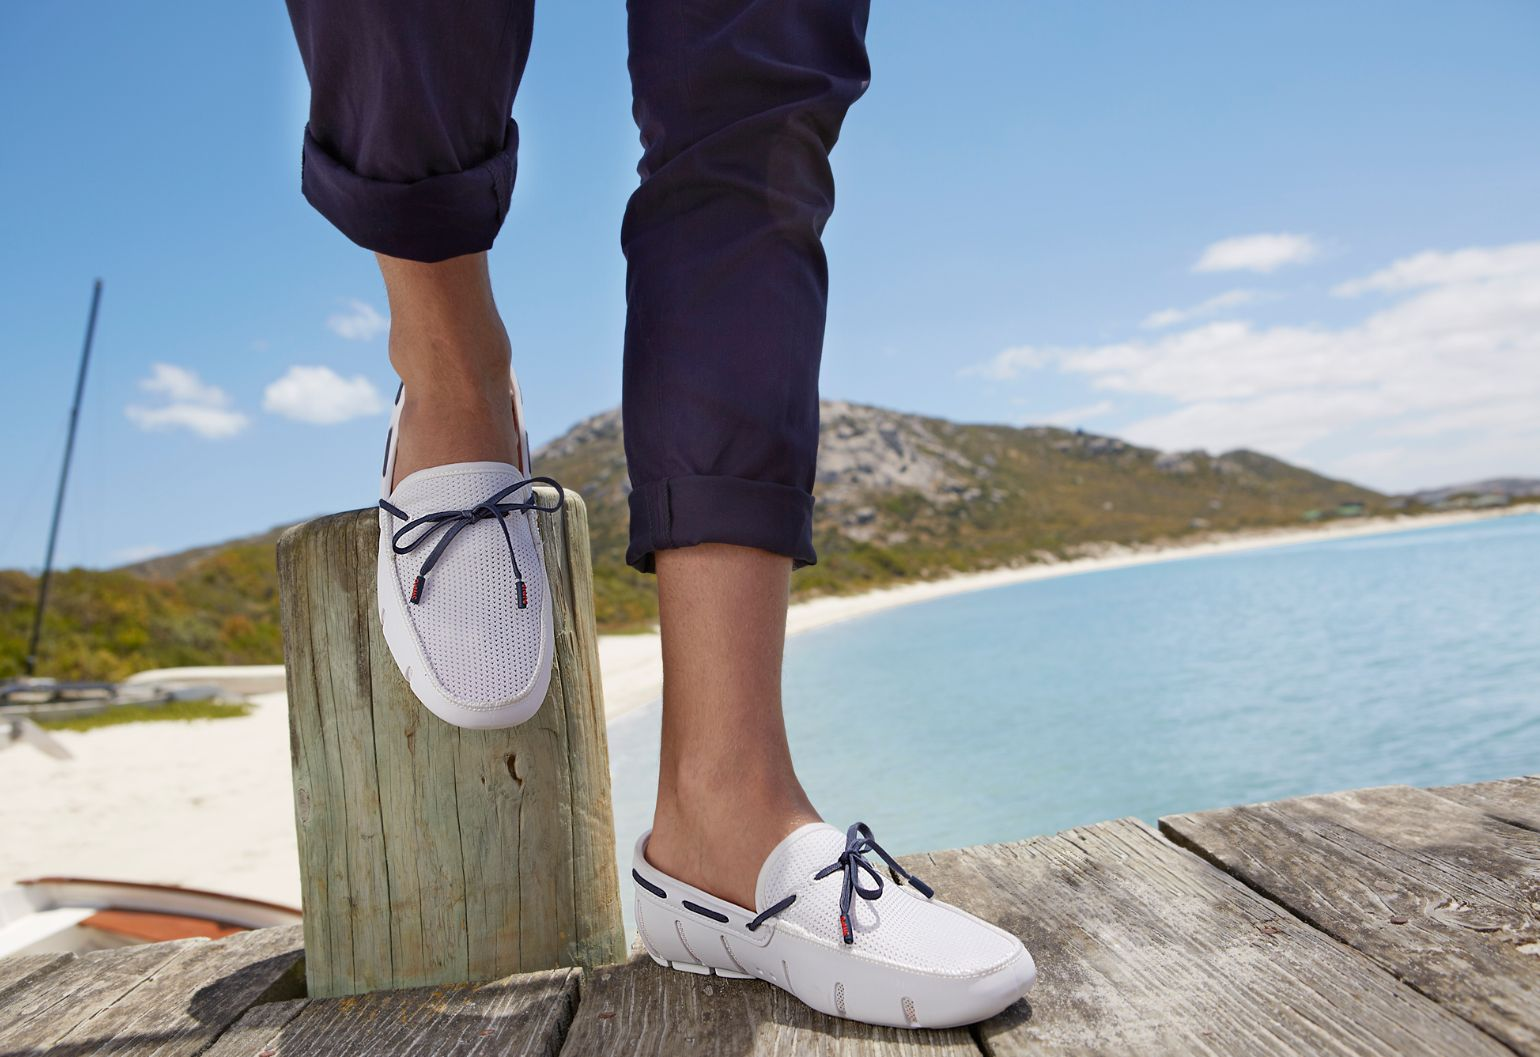 Waterproof-Loafers-for-Spring-Summer-2013-season-by-SWIMS-11